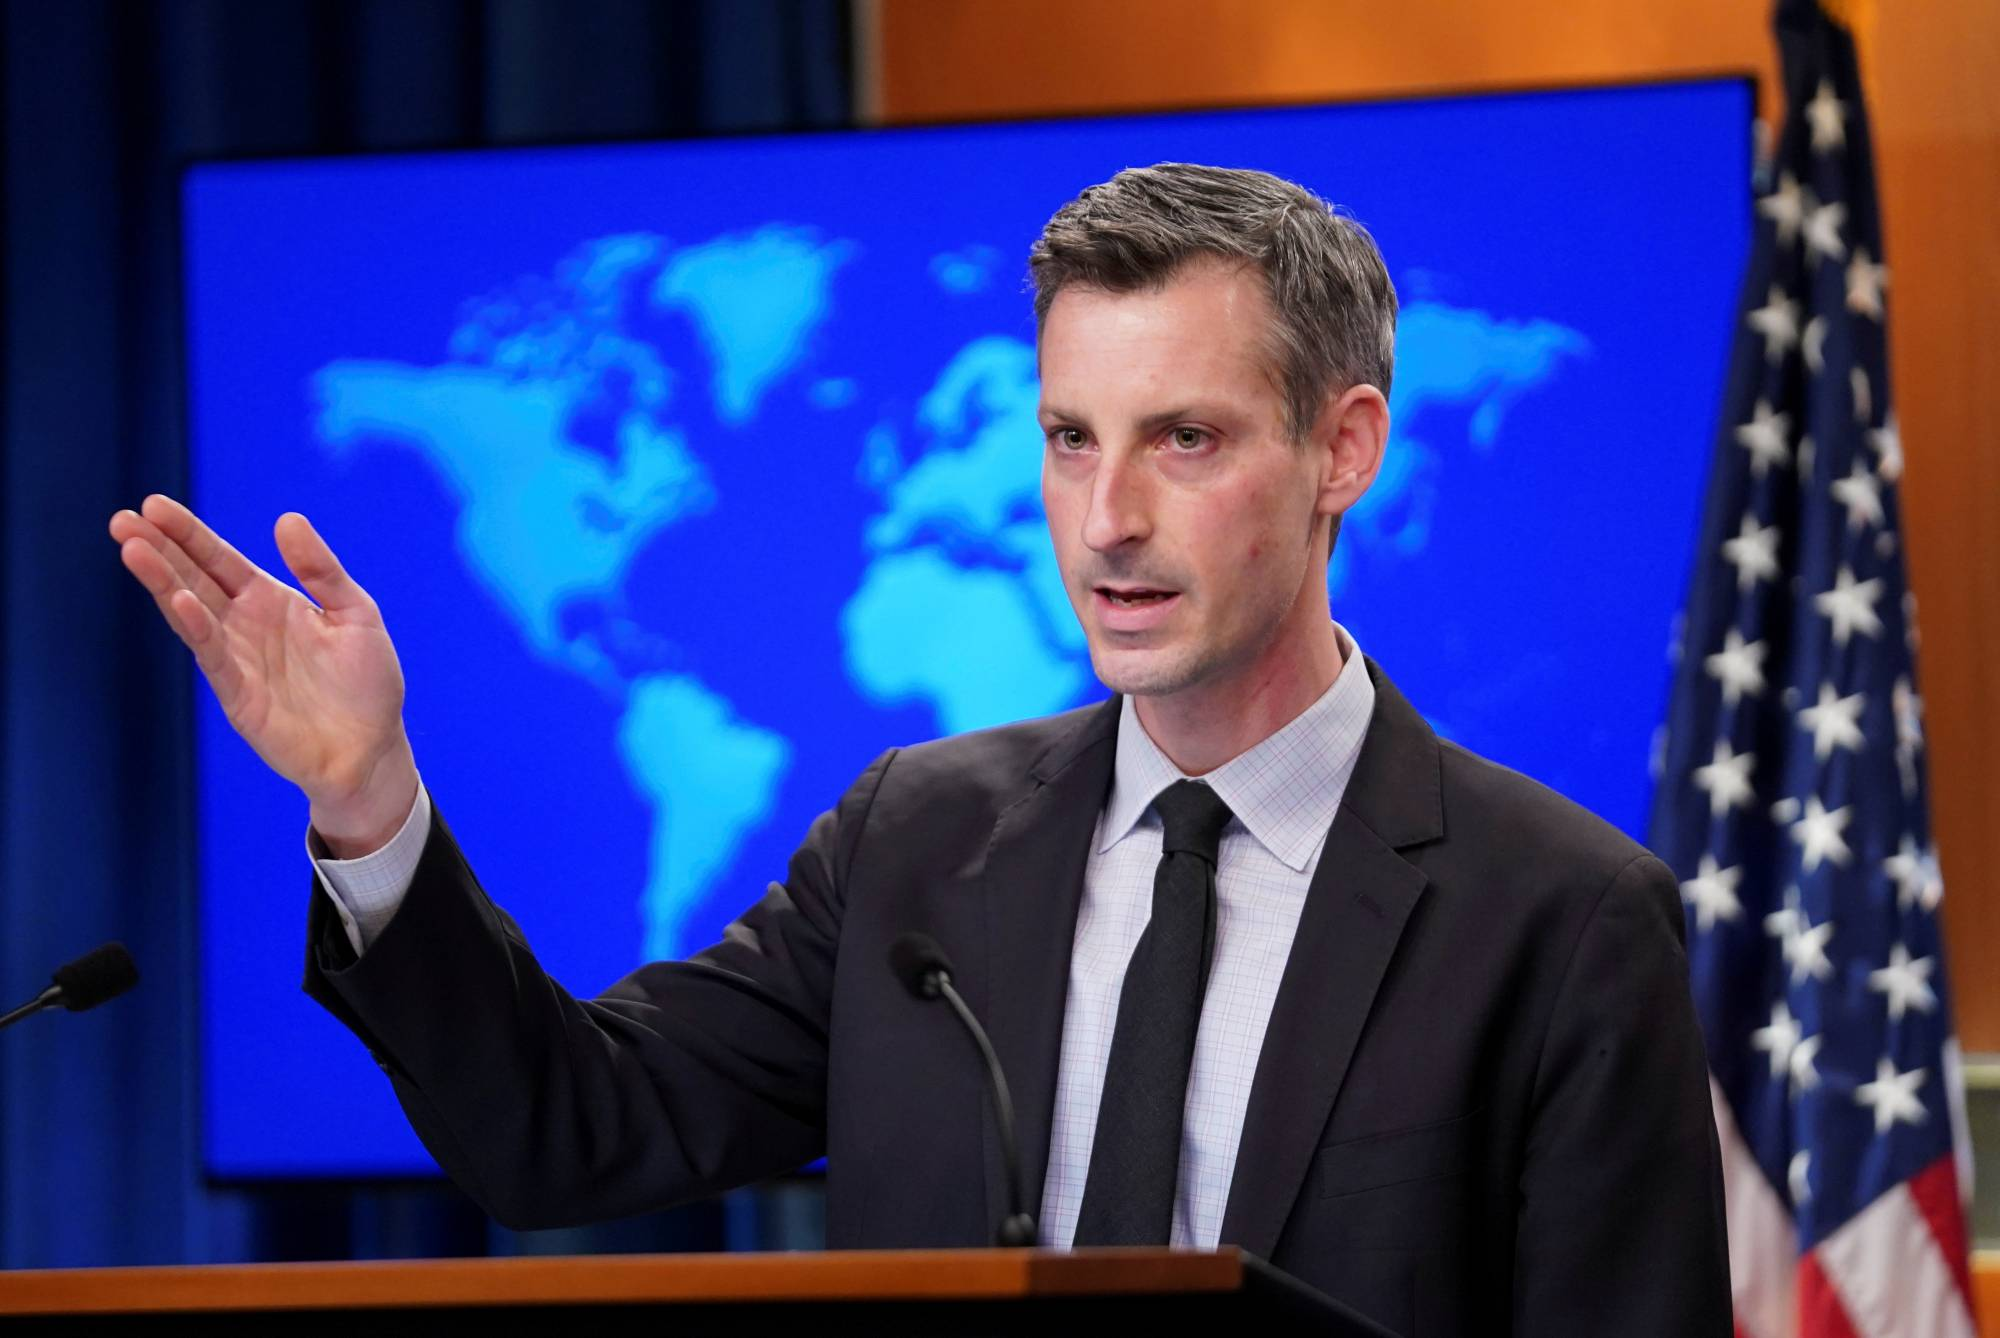 FILE PHOTO: U.S. State Department Spokesman Ned Price speaks to reporters during a news briefing at the State Department in Washington, U.S., February 17, 2021. REUTERS/Kevin Lamarque/Pool/File Photo